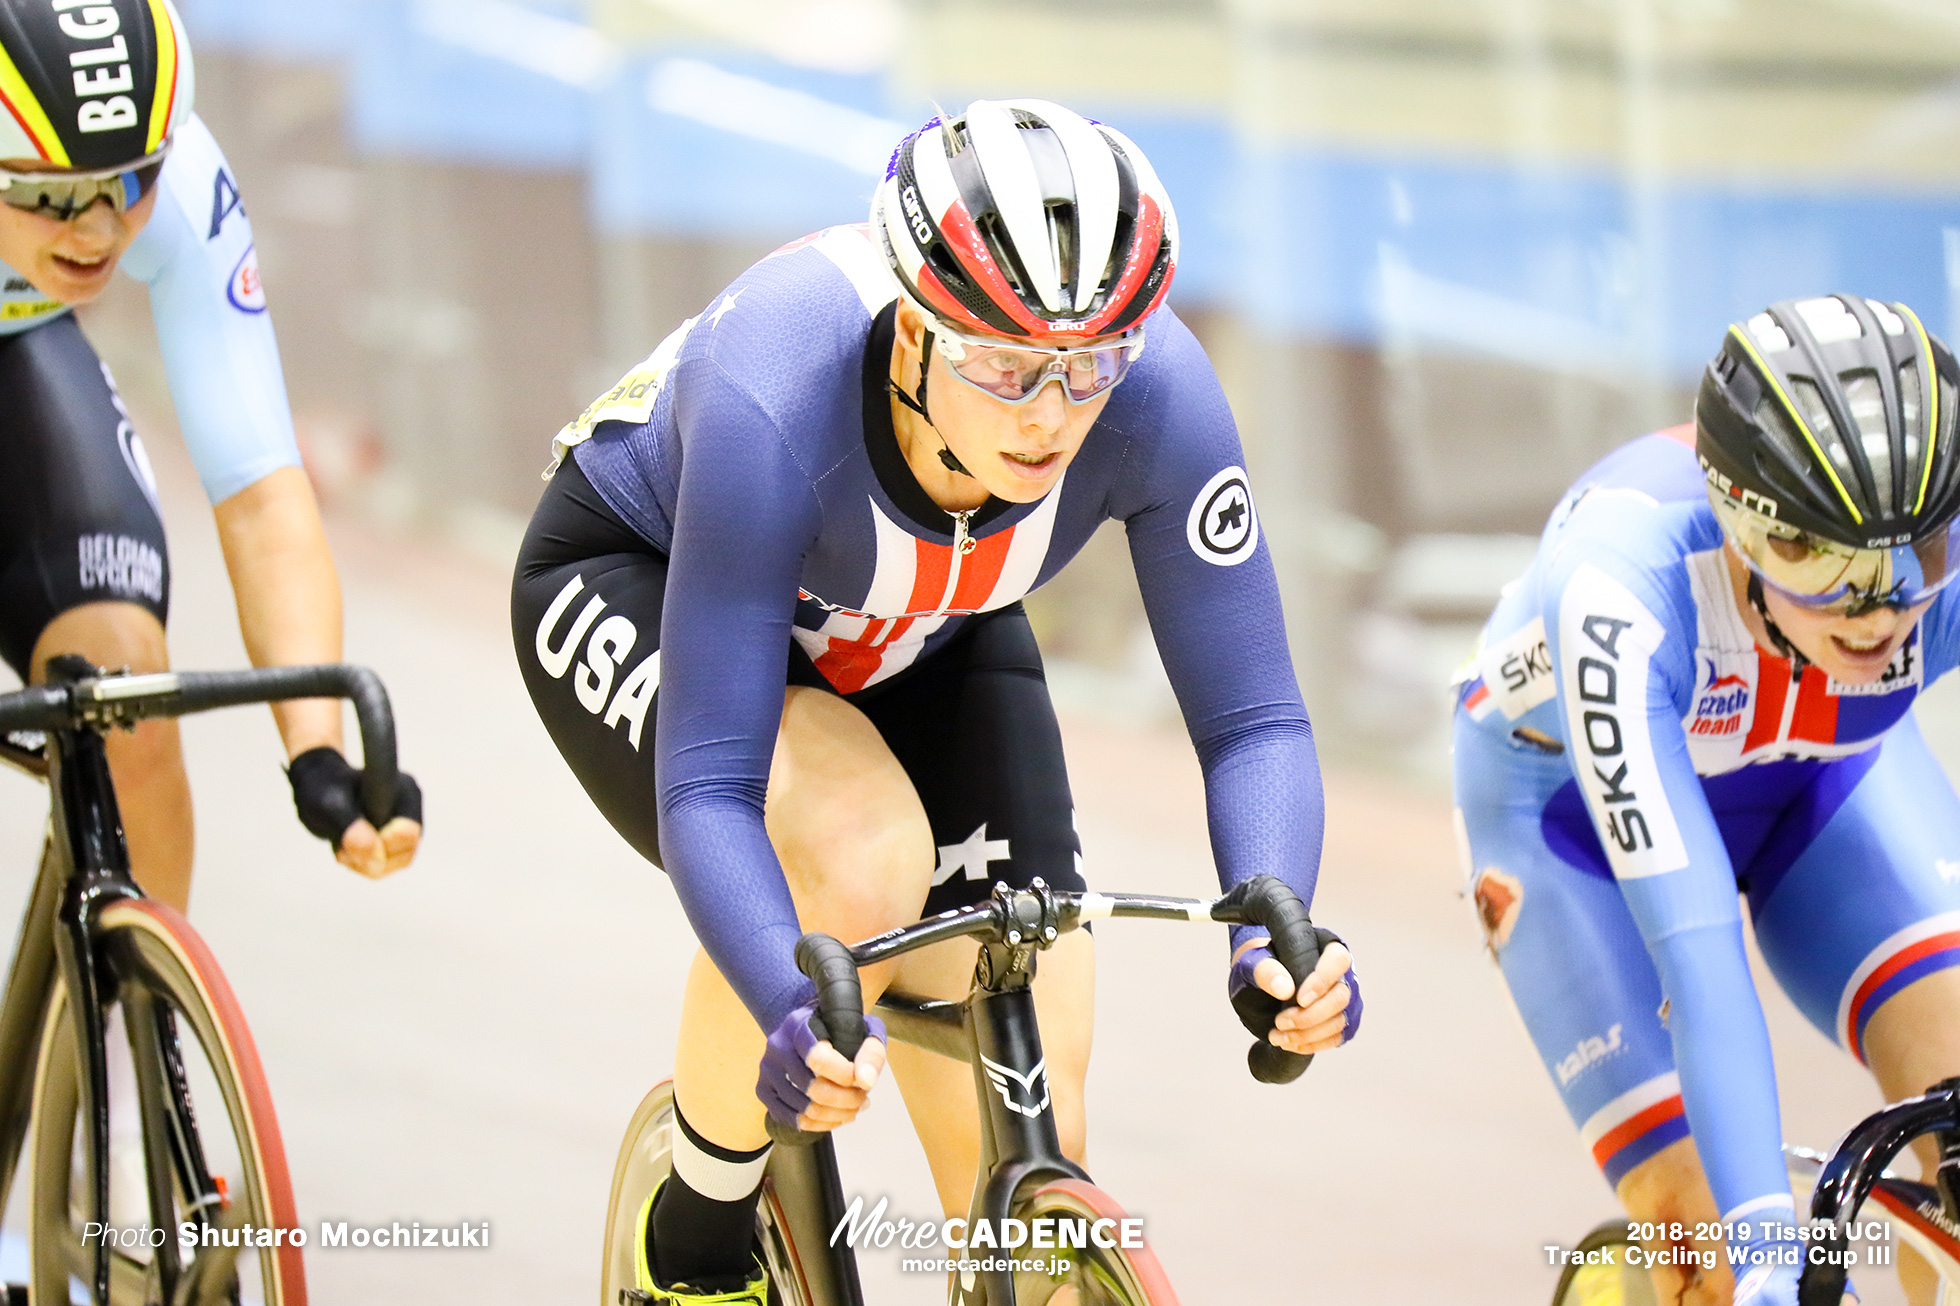 Women's Madison/Final/2018-2019 Track Cycling World Cup III Berlin